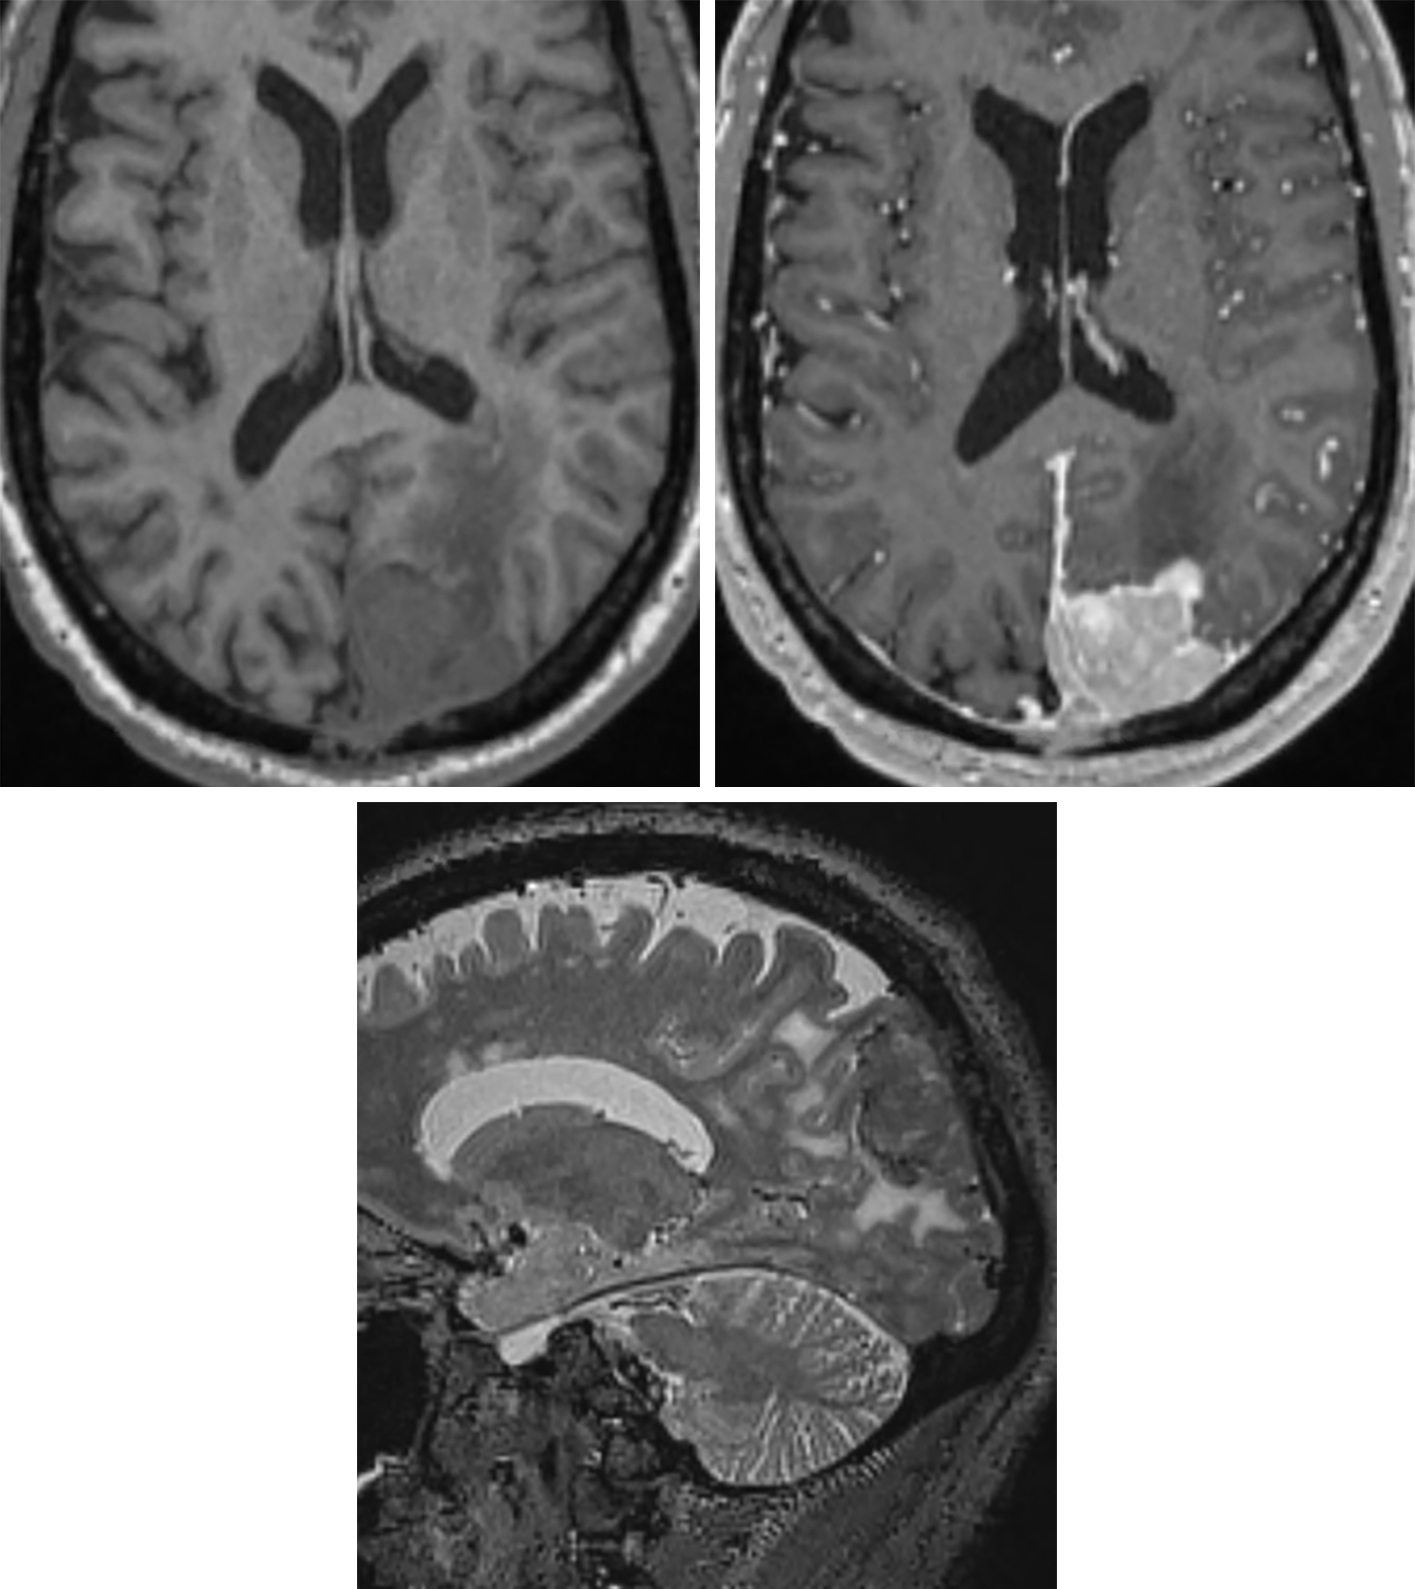 Figure 2: (Top Right) Thought more difficult to see on T1-weighted axial imaging, this left parieto-occipital convexity MM demonstrates bright enhancement on postcontrast T1-weighted imaging. The irregular contour is more typical of MM than of benign meningioma. (Bottom) Sagittal T2-weighted imaging also demonstrates hyperintense surrounding edema, a feature that is often seen in benign meningioma but should also raise suspicion for a higher-grade lesion.